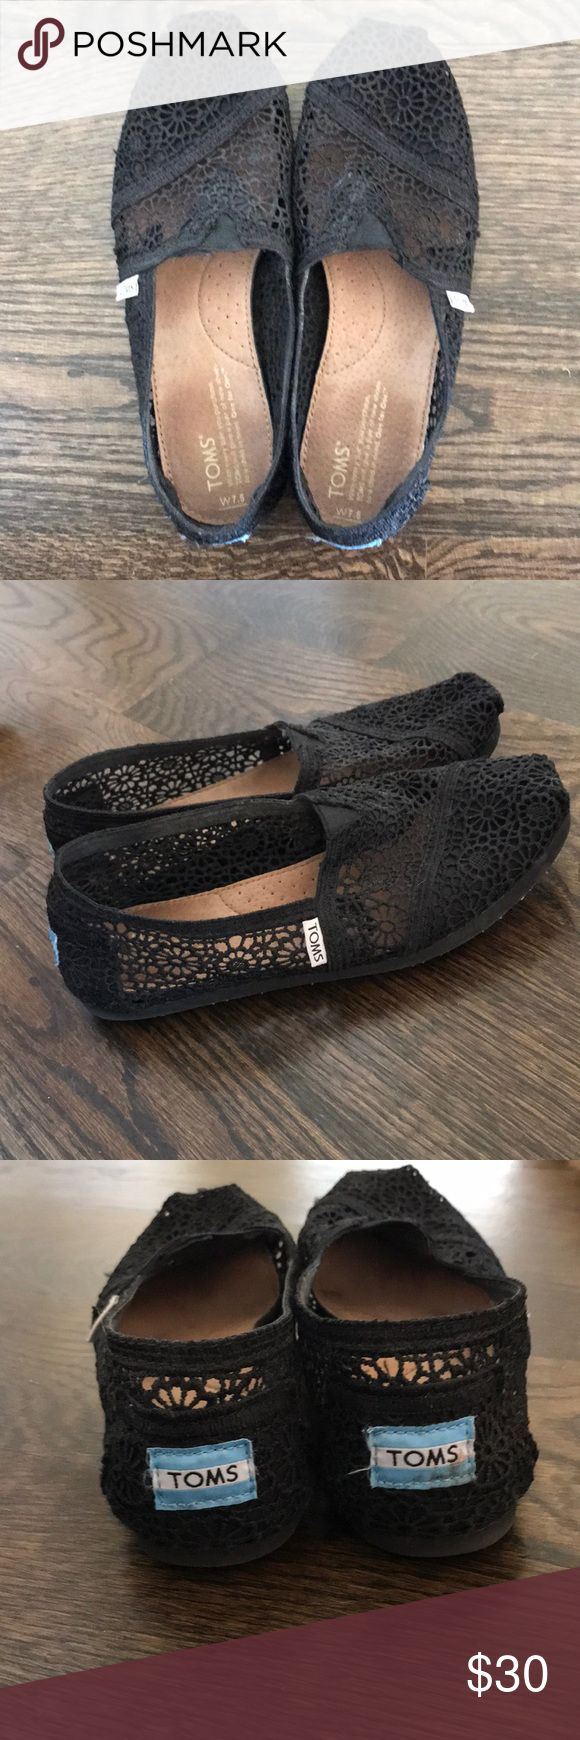 Black Lace Toms Black lace atoms shoes, size 7.5. No wear or tears, hardly used. Toms Shoes Flats & Loafers